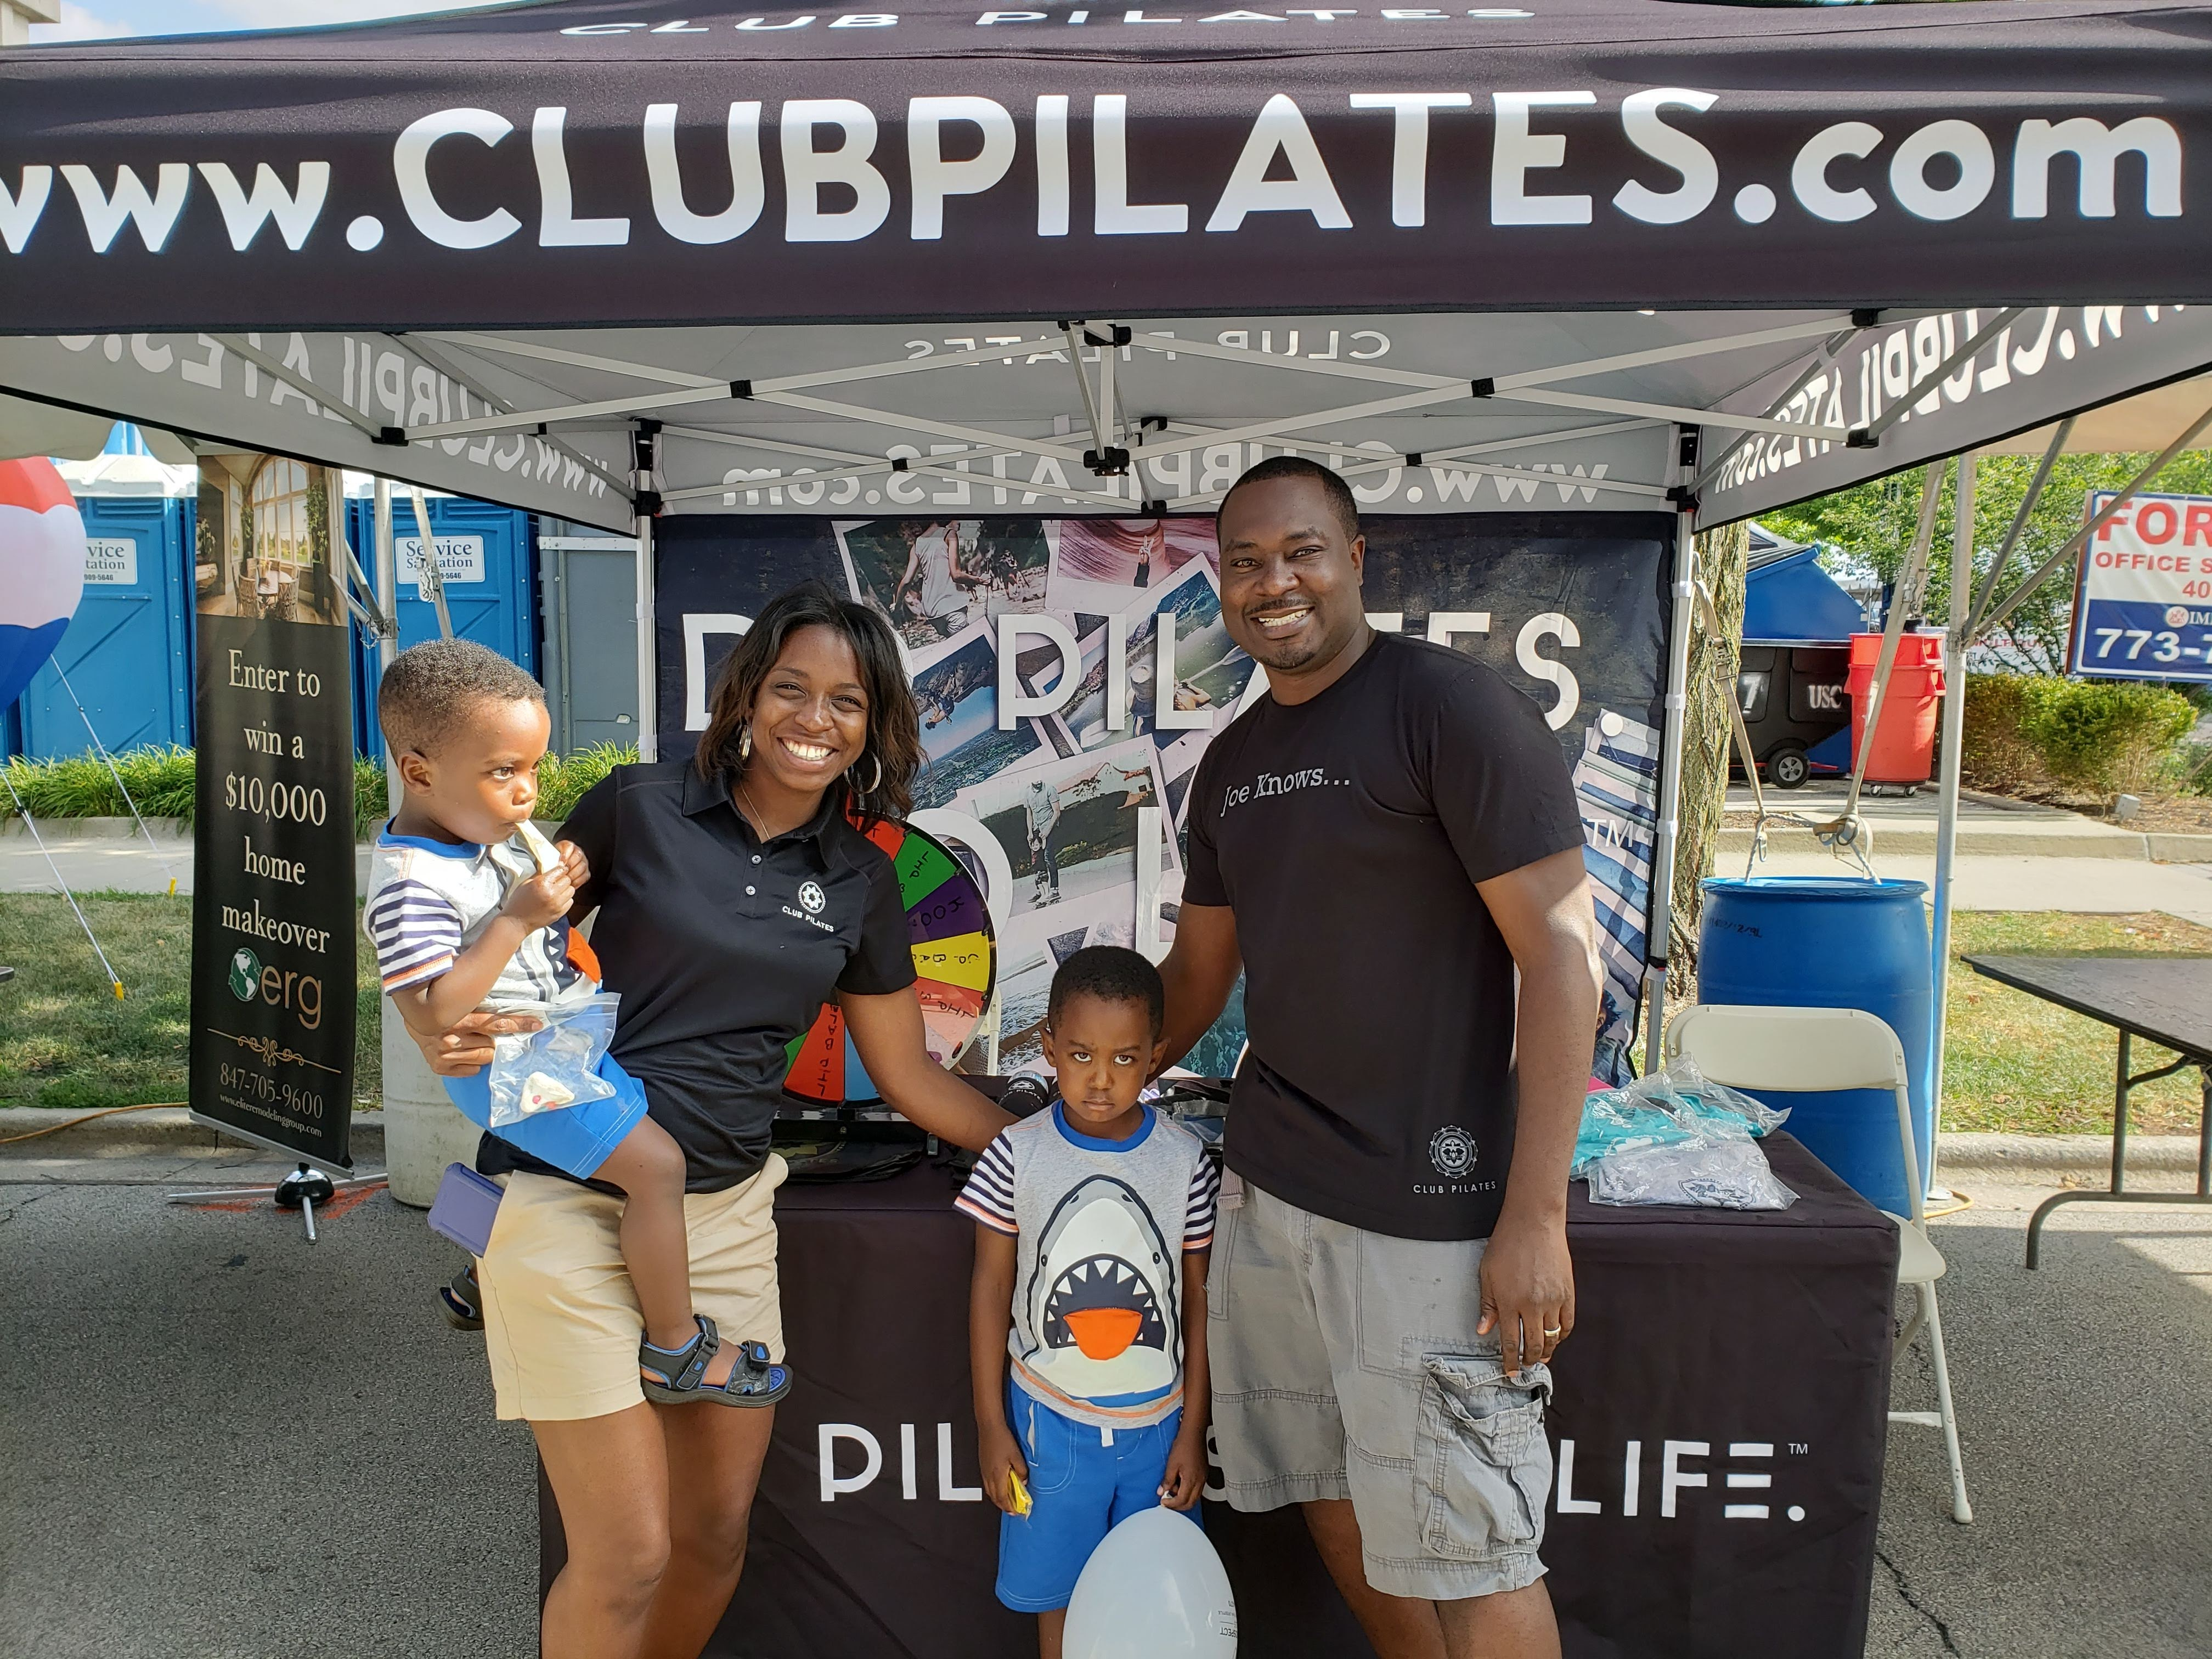 Club Pilates Mount Prospect- Family Pic at Grassroots event